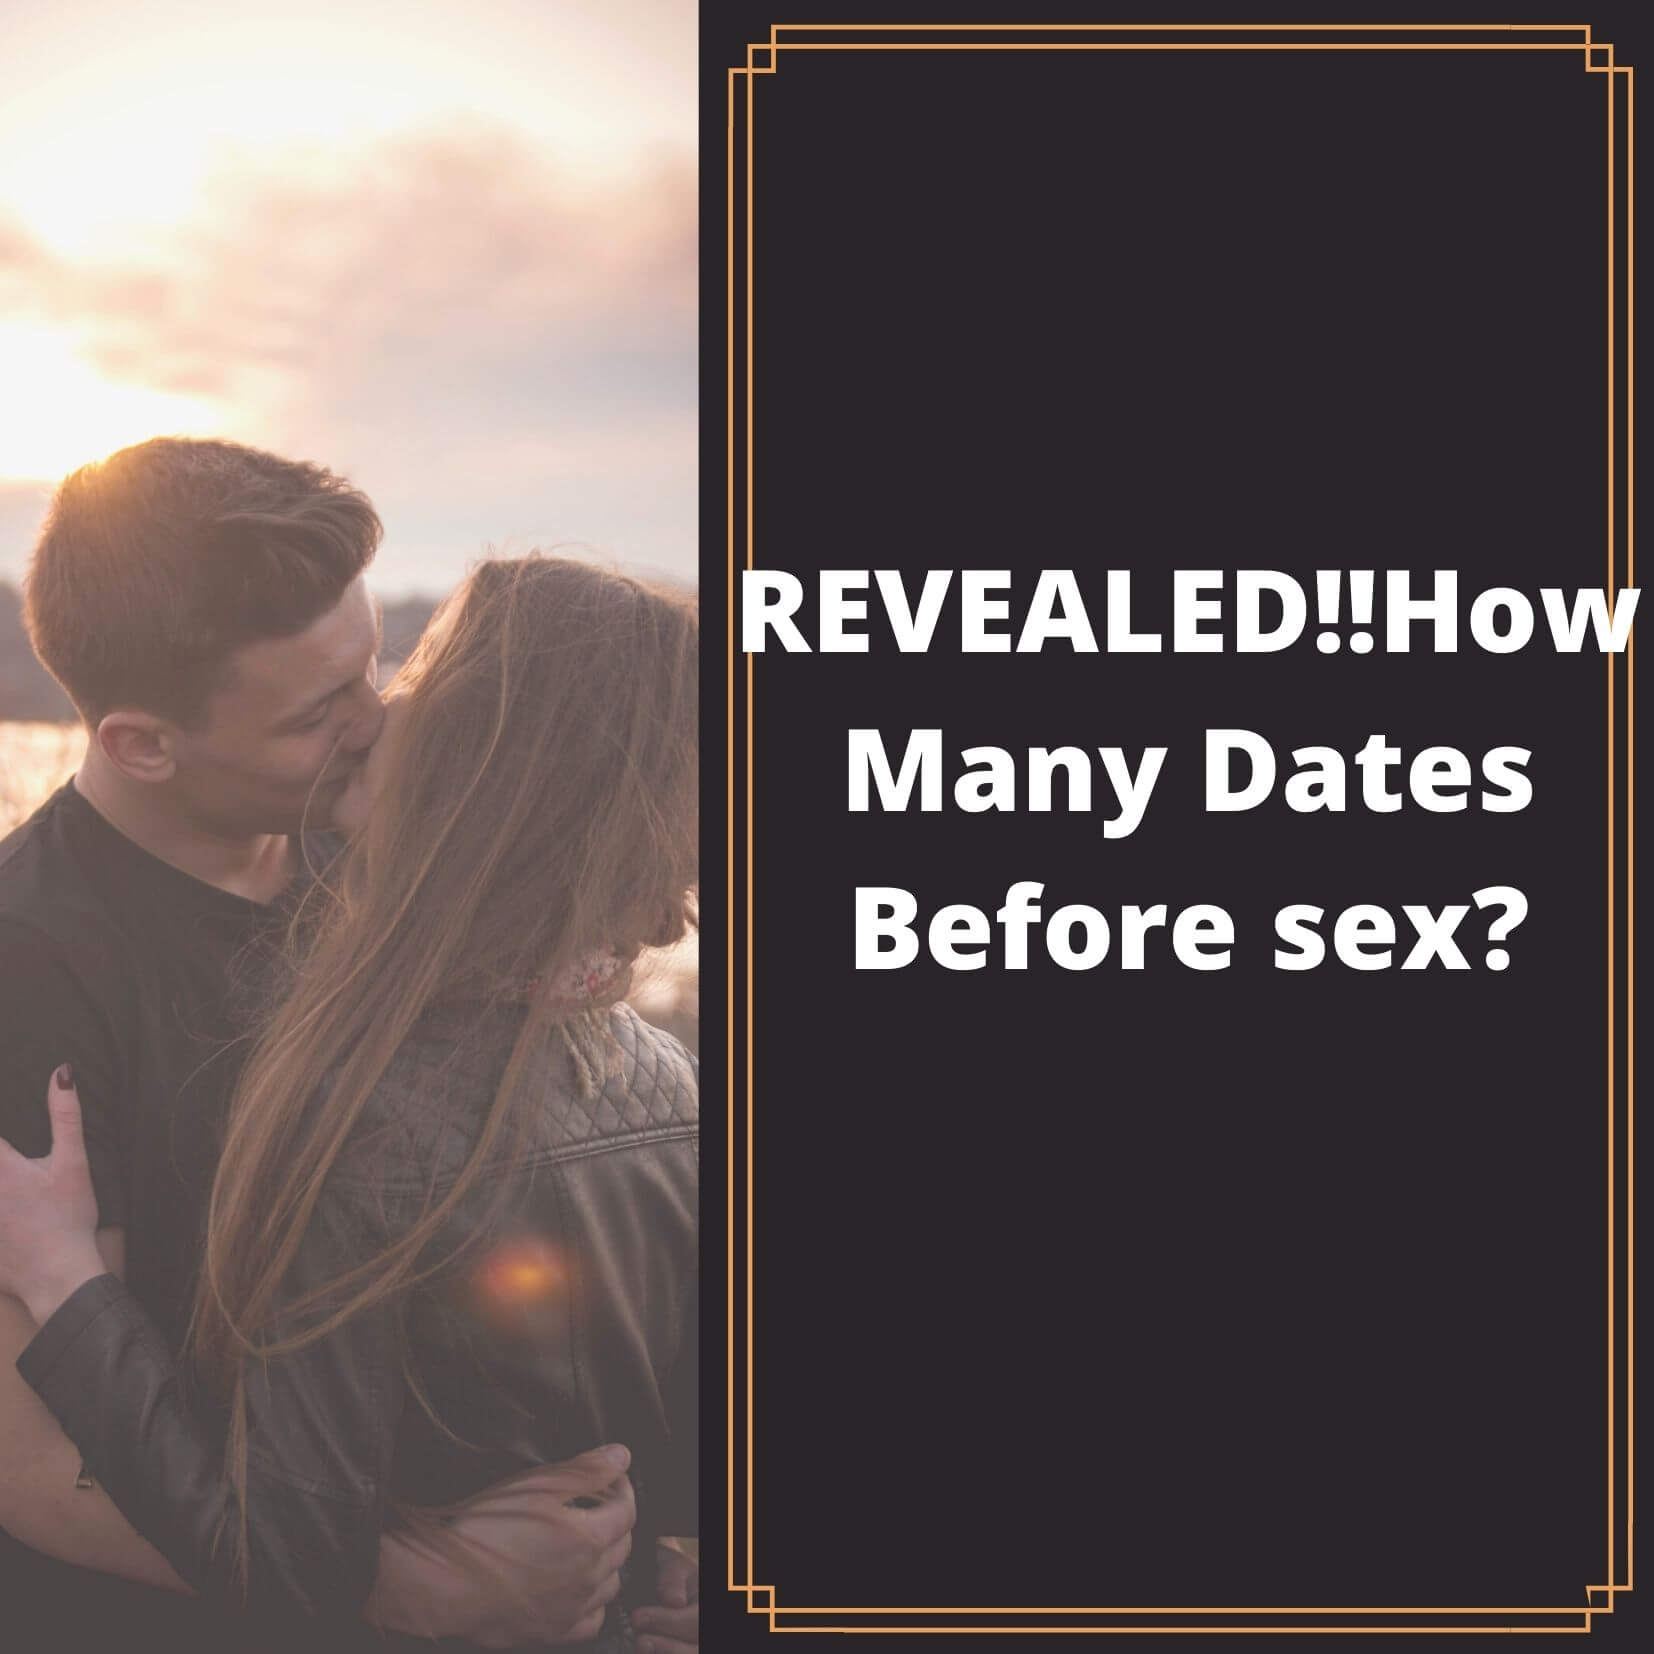 How Many Dates Before Sex